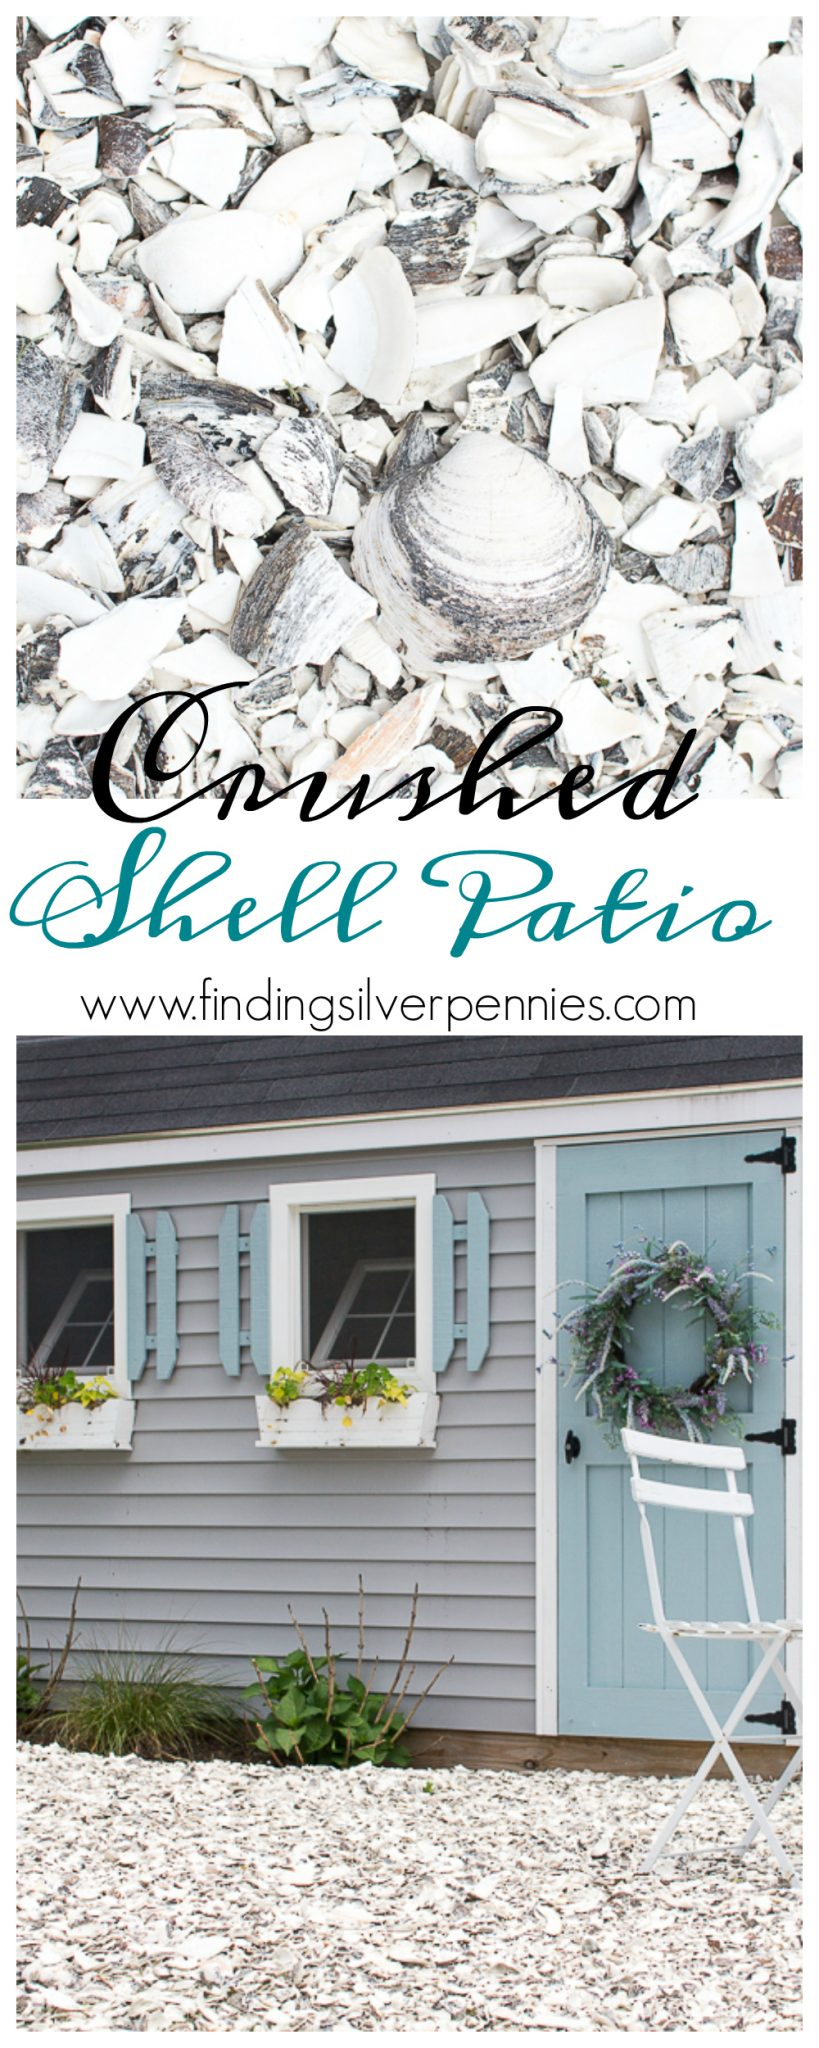 Crushed Shell Patio - Favorite DIY - Finding Silver Pennies